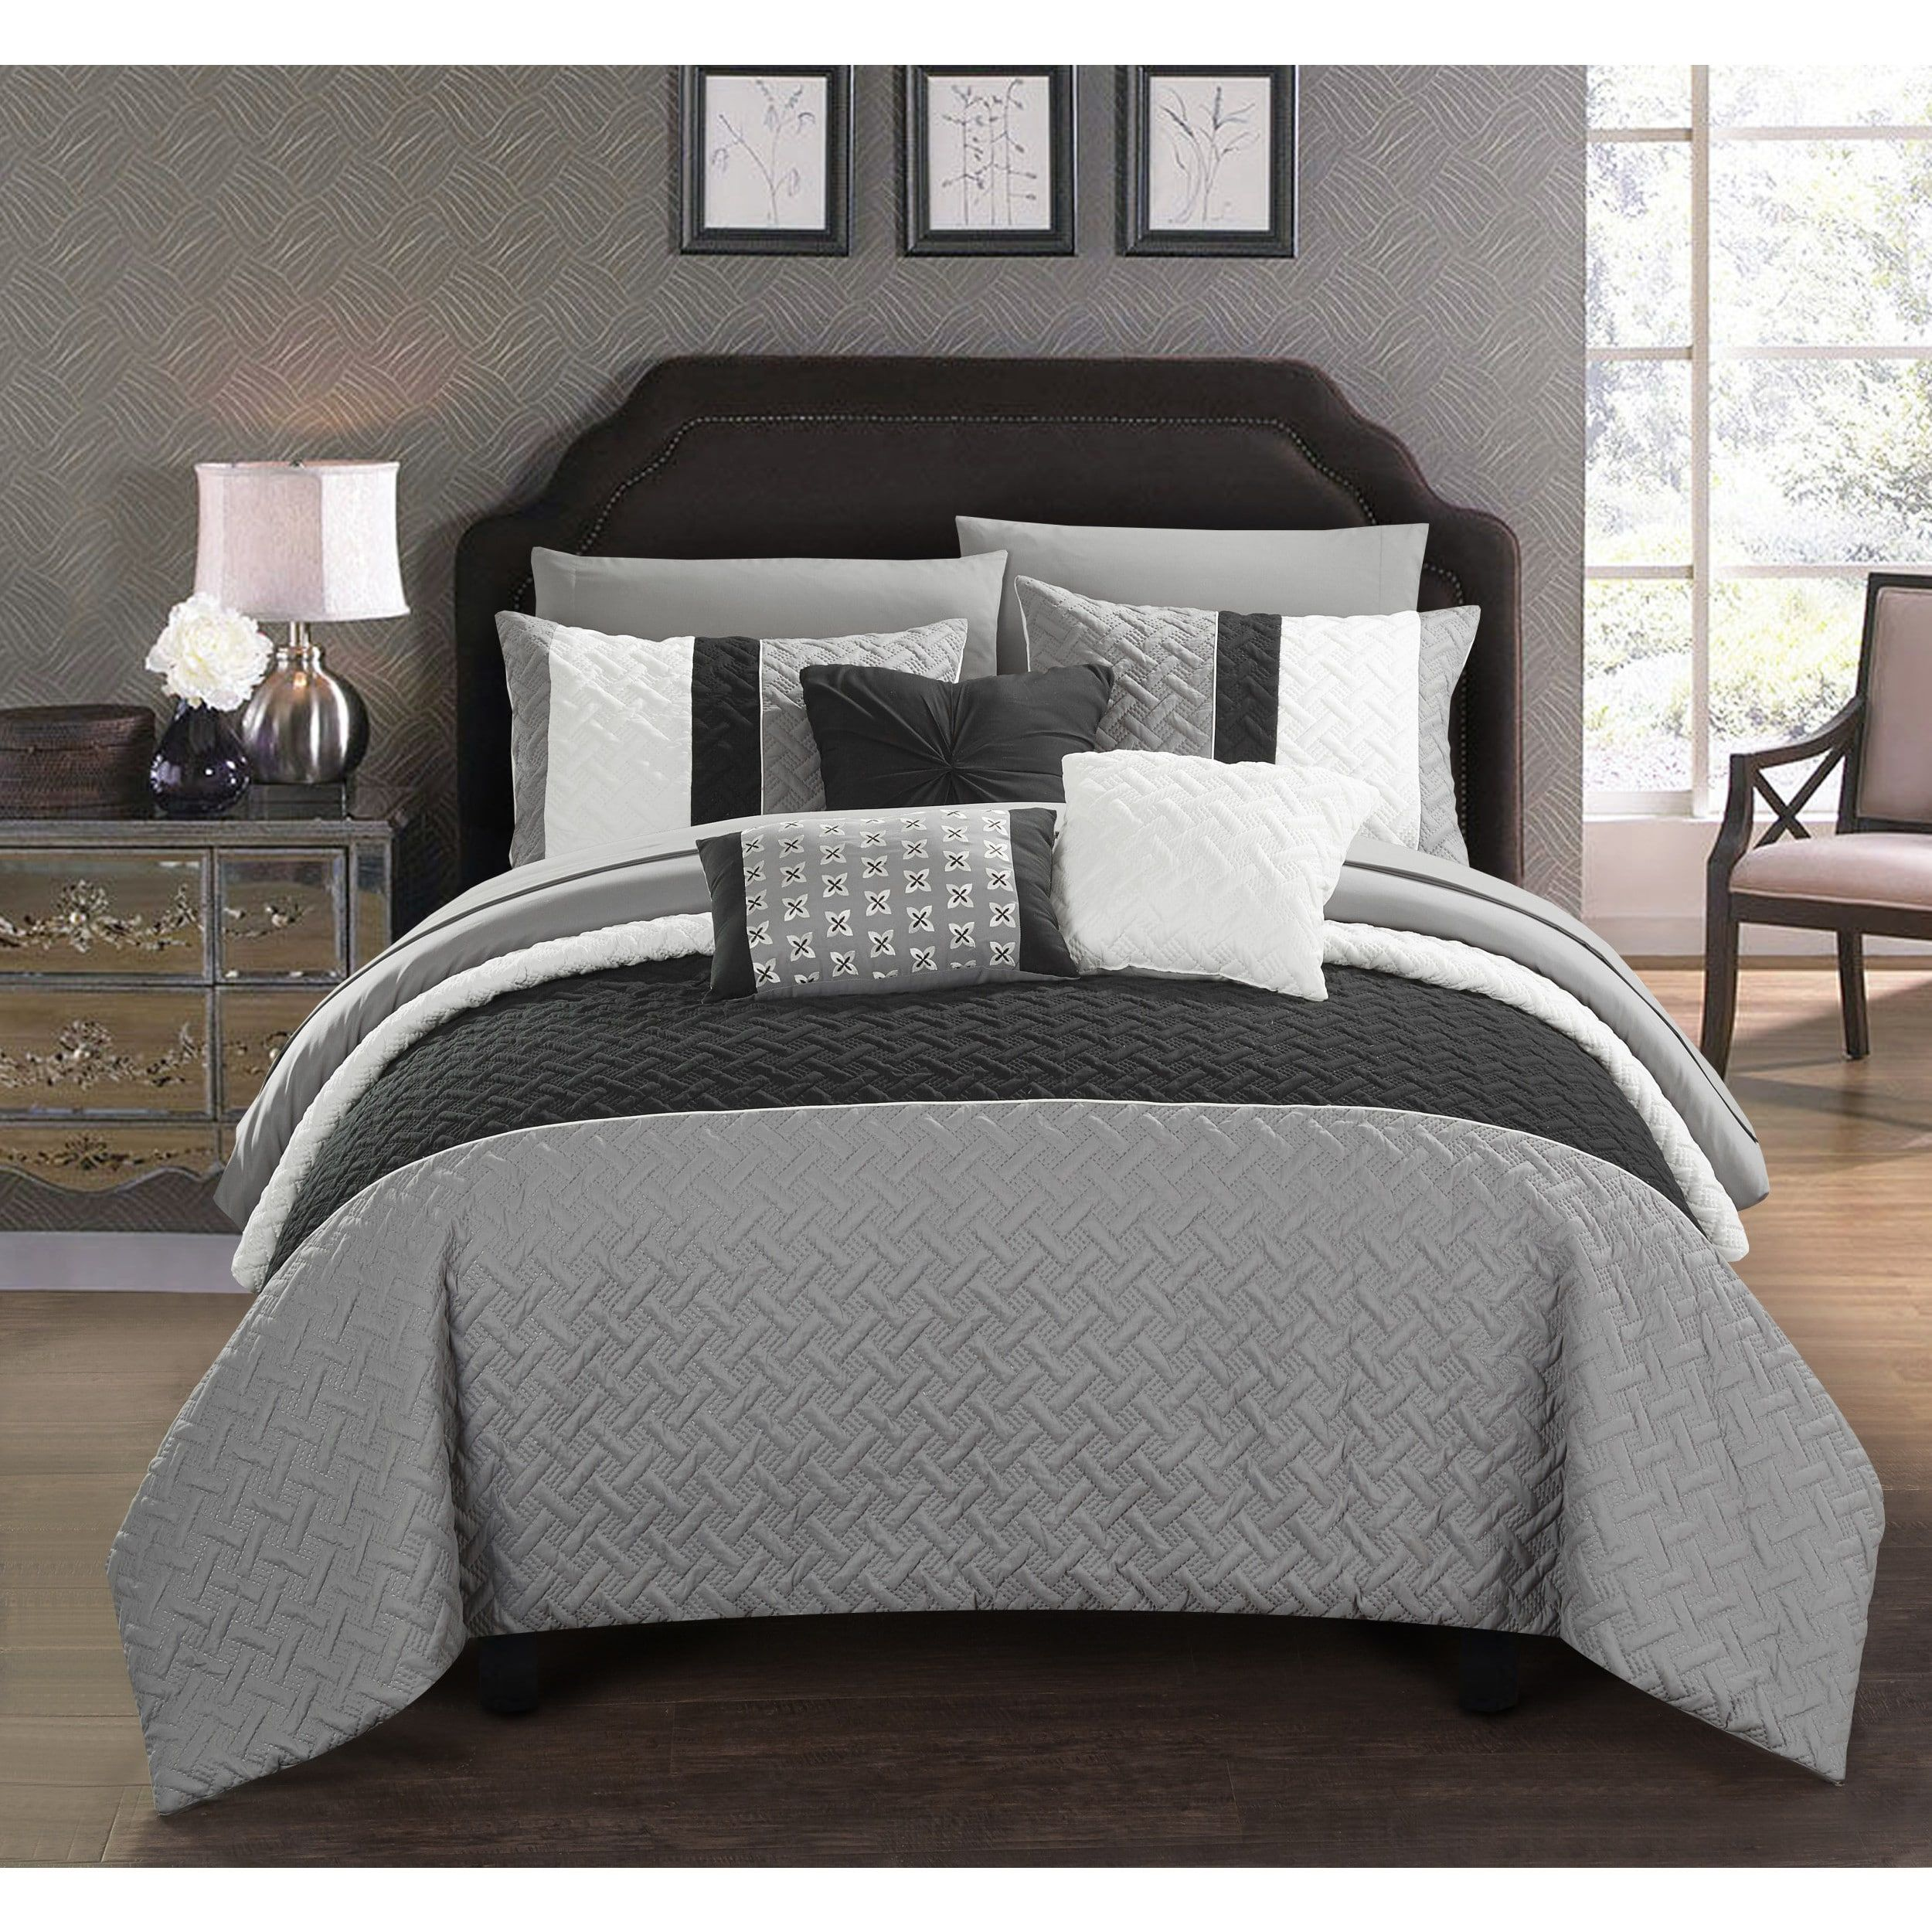 Chic Home 10 Piece Color Block Quilted Comforter Set Twin Black